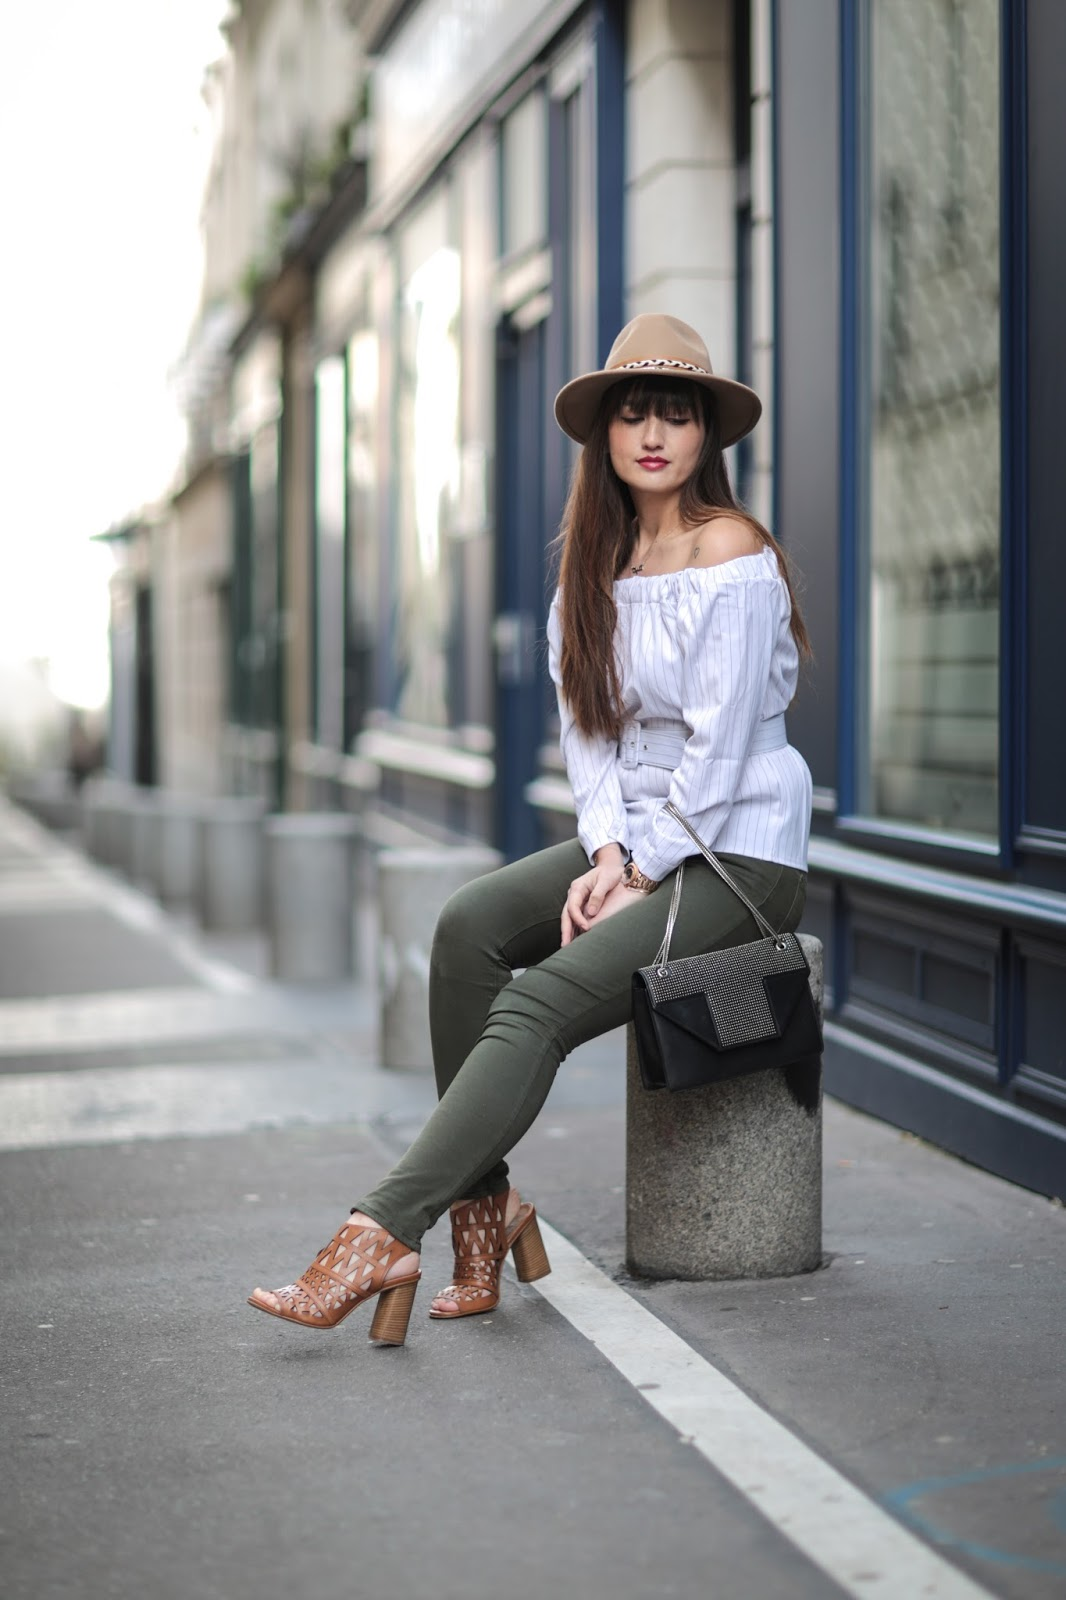 meet me in paree,  blogger, fashion, look, paris style, chic, spring look, parisian style